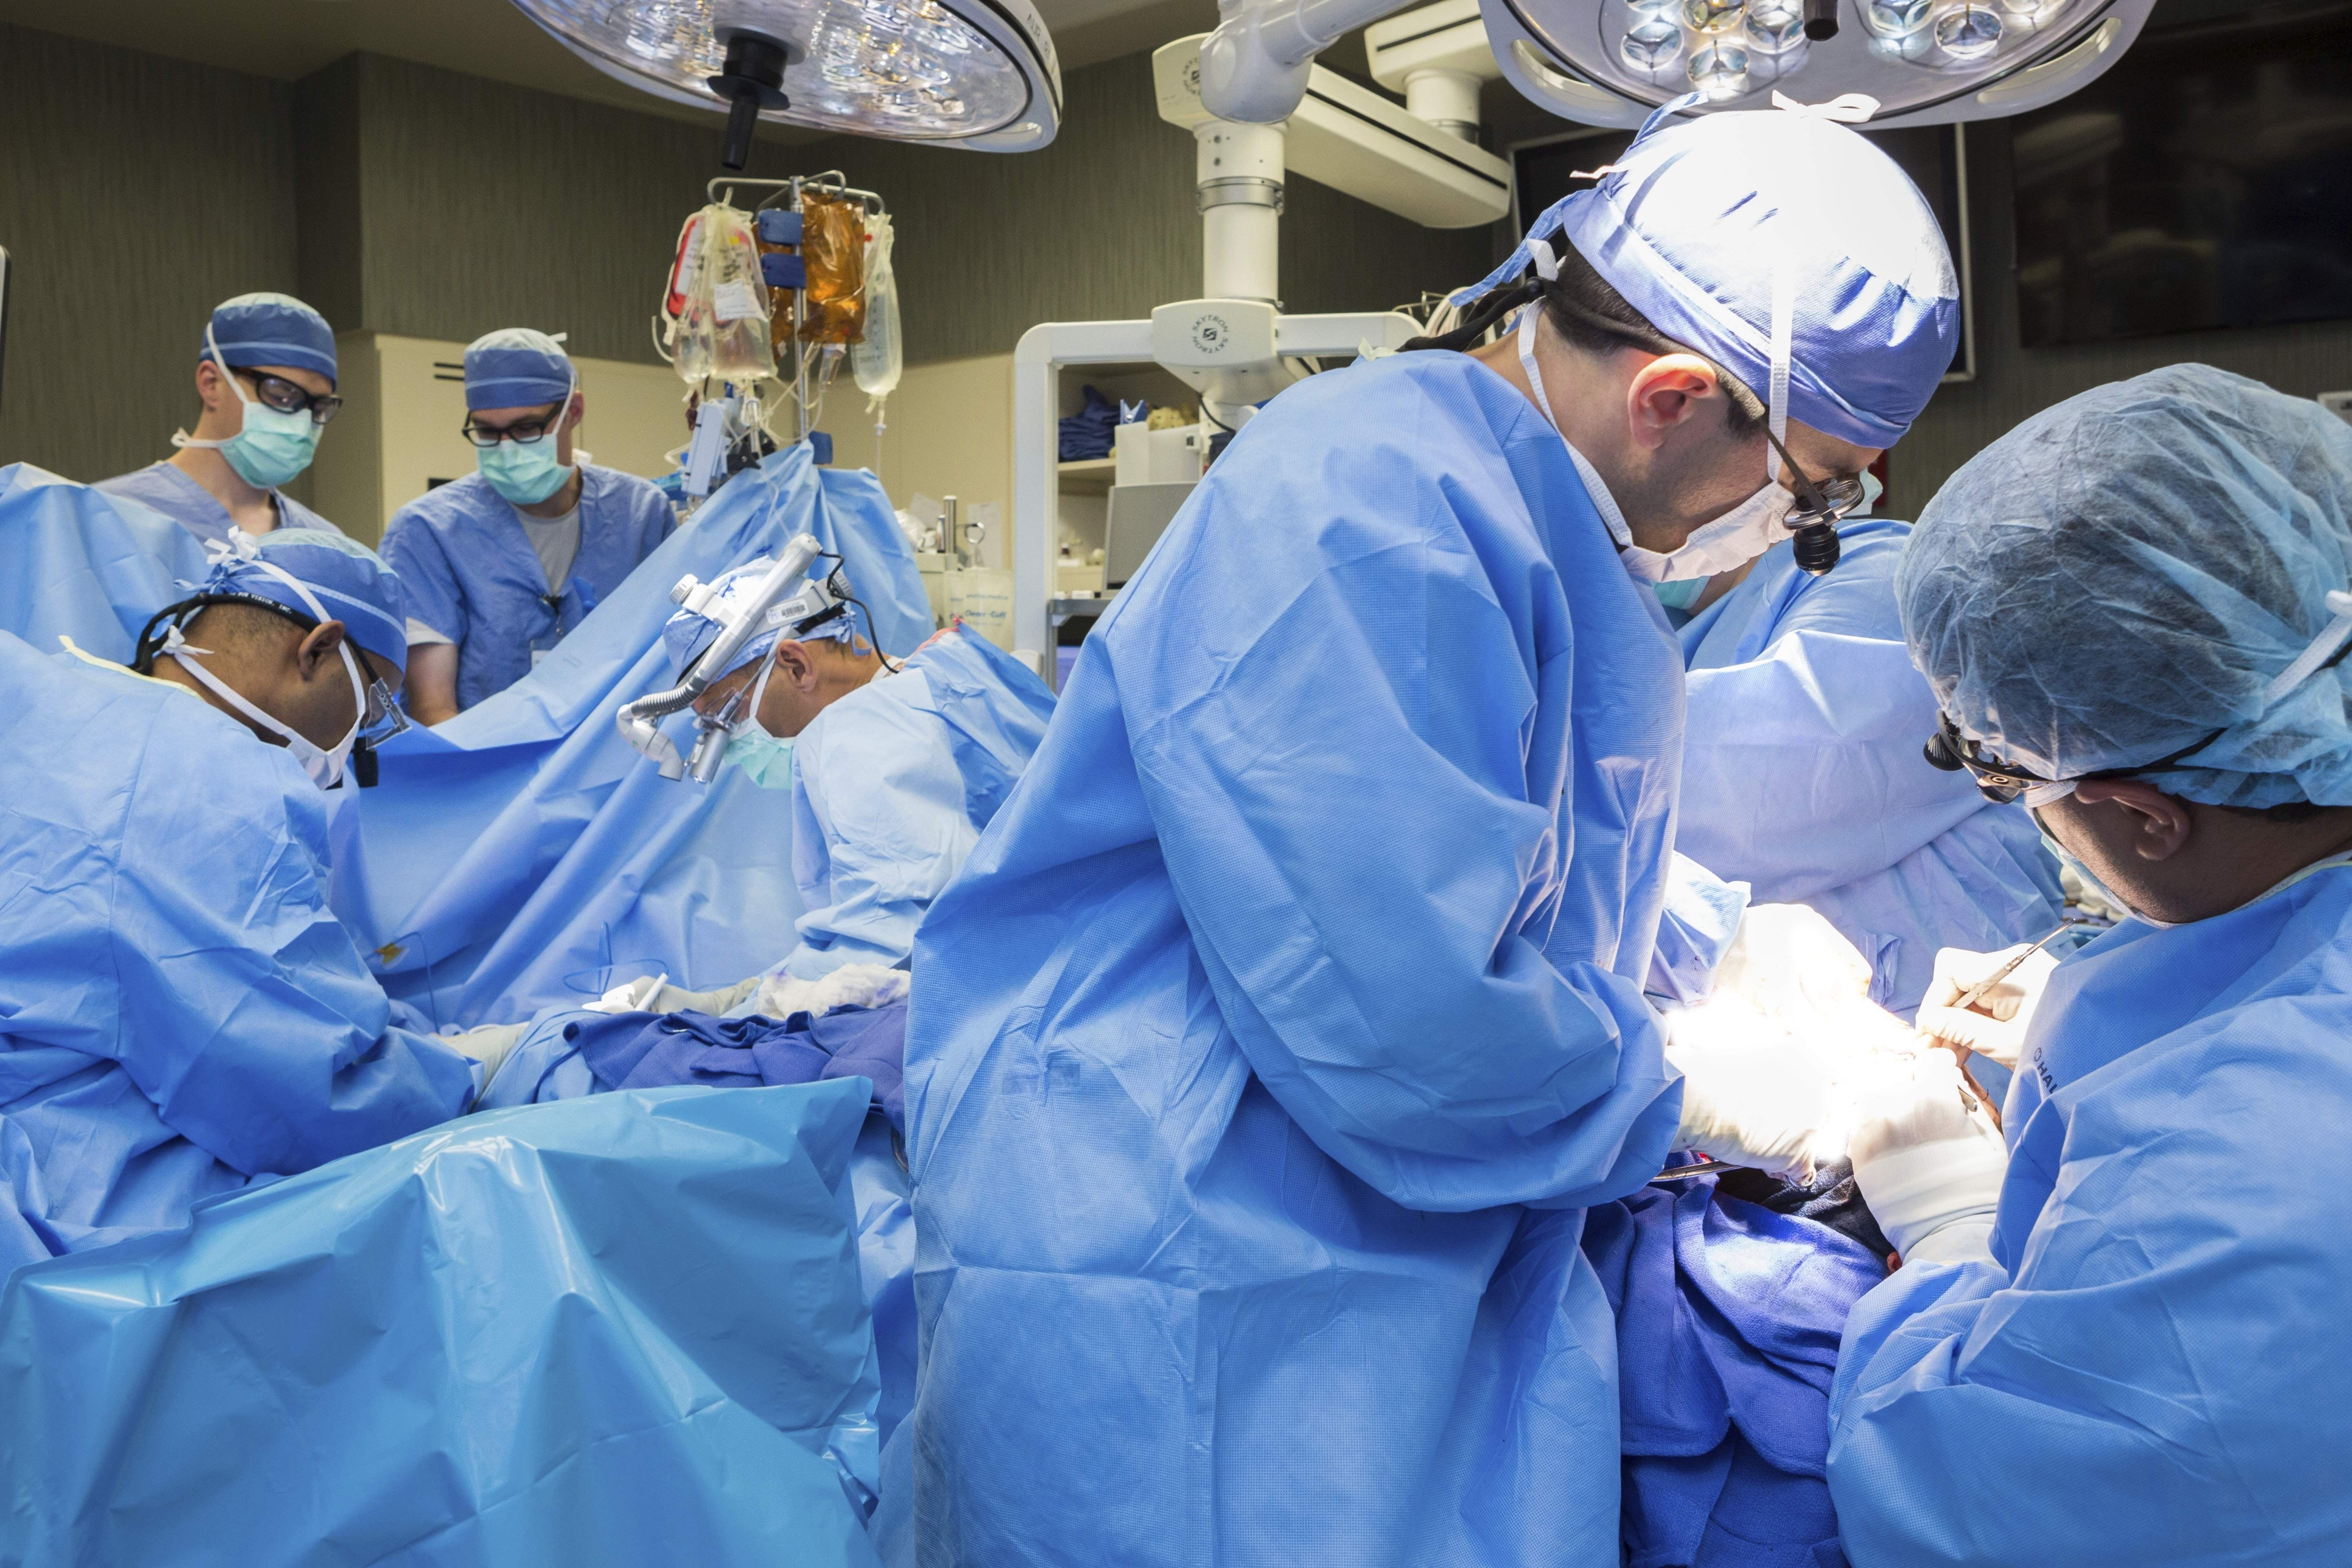 In this June 11, 2016, photo provided by the Mayo Clinic, a medical team performs a face transplant surgery at the medical center in Rochester, Minn. The surgery that started shortly before midnight Friday was over early Monday morning. THE ASSOCIATED PRESS